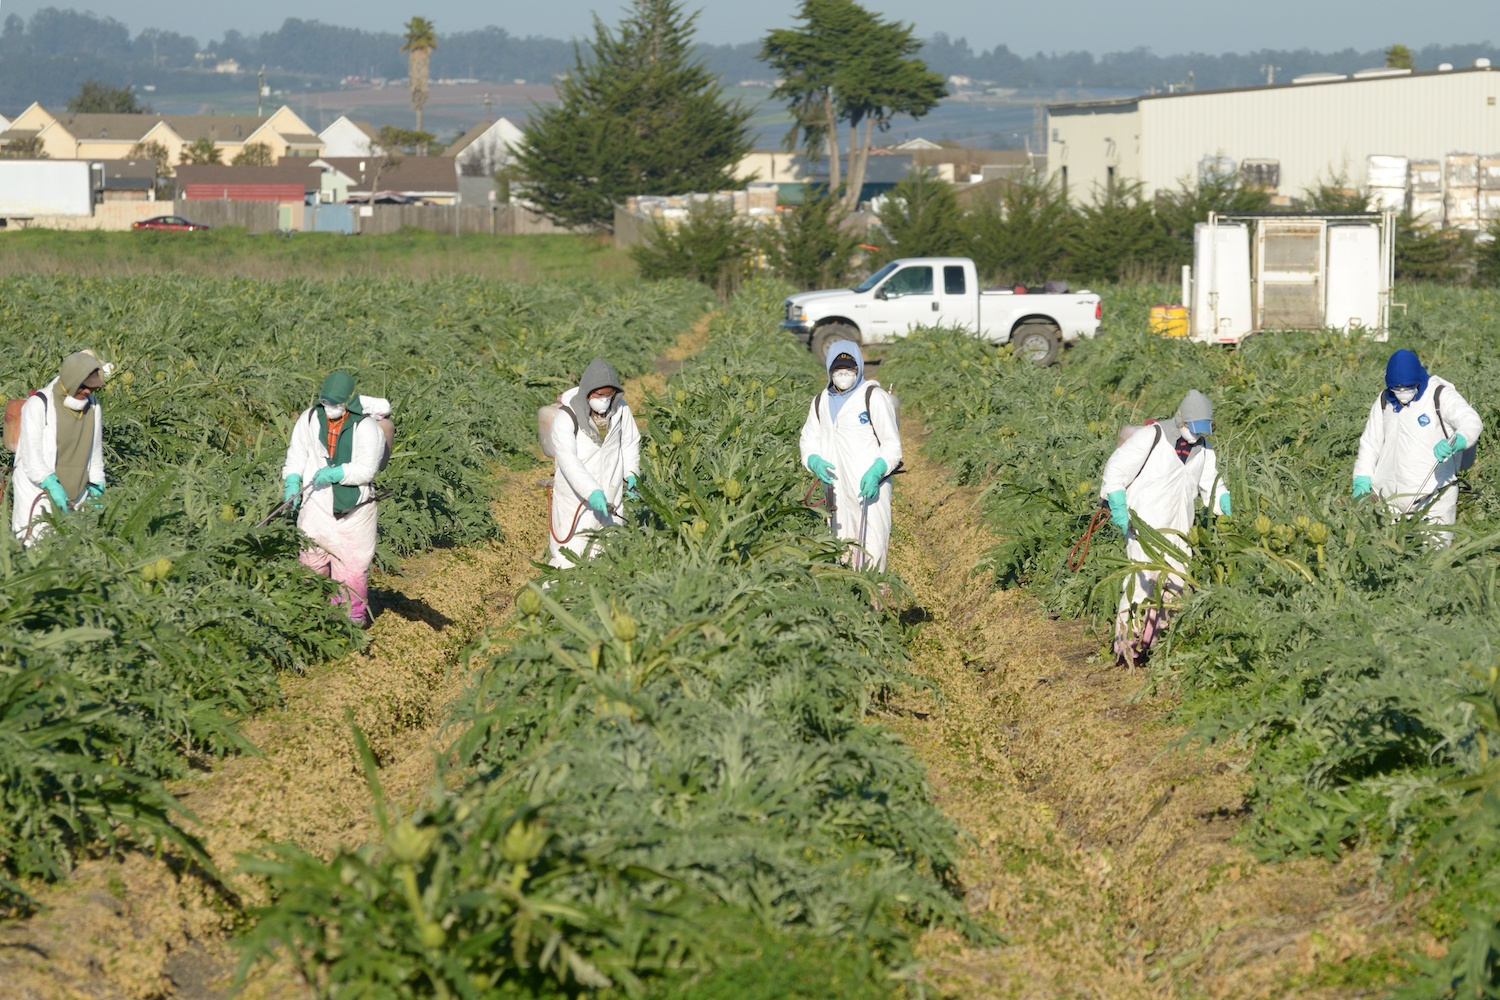 Farmworkers wear protective gear while spraying pesticides throughout a field of artichokes. February 2021